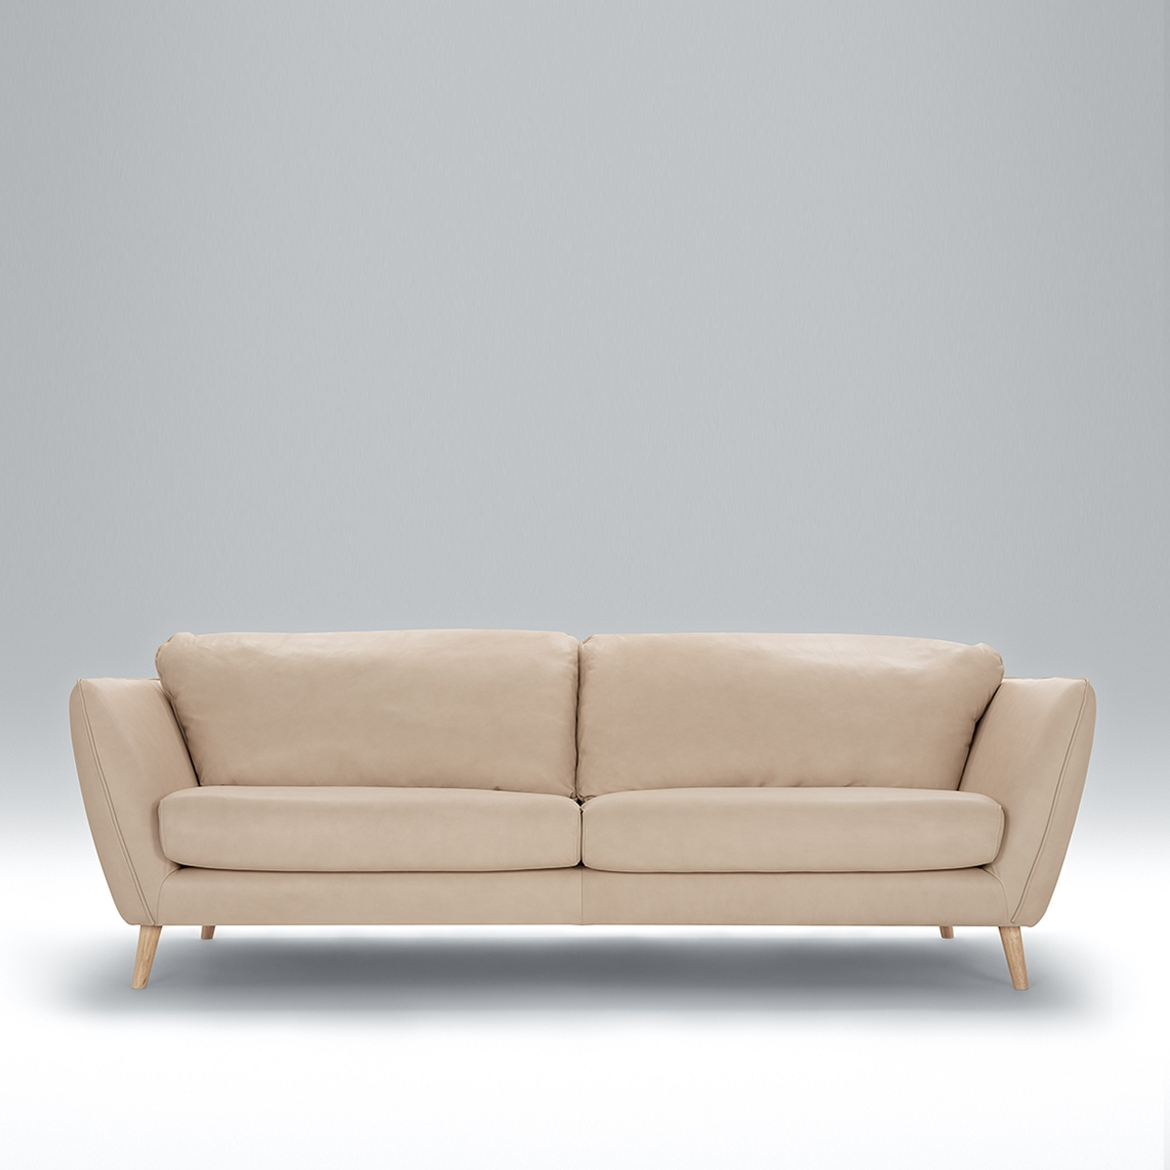 Angel 2 seater leather sofa